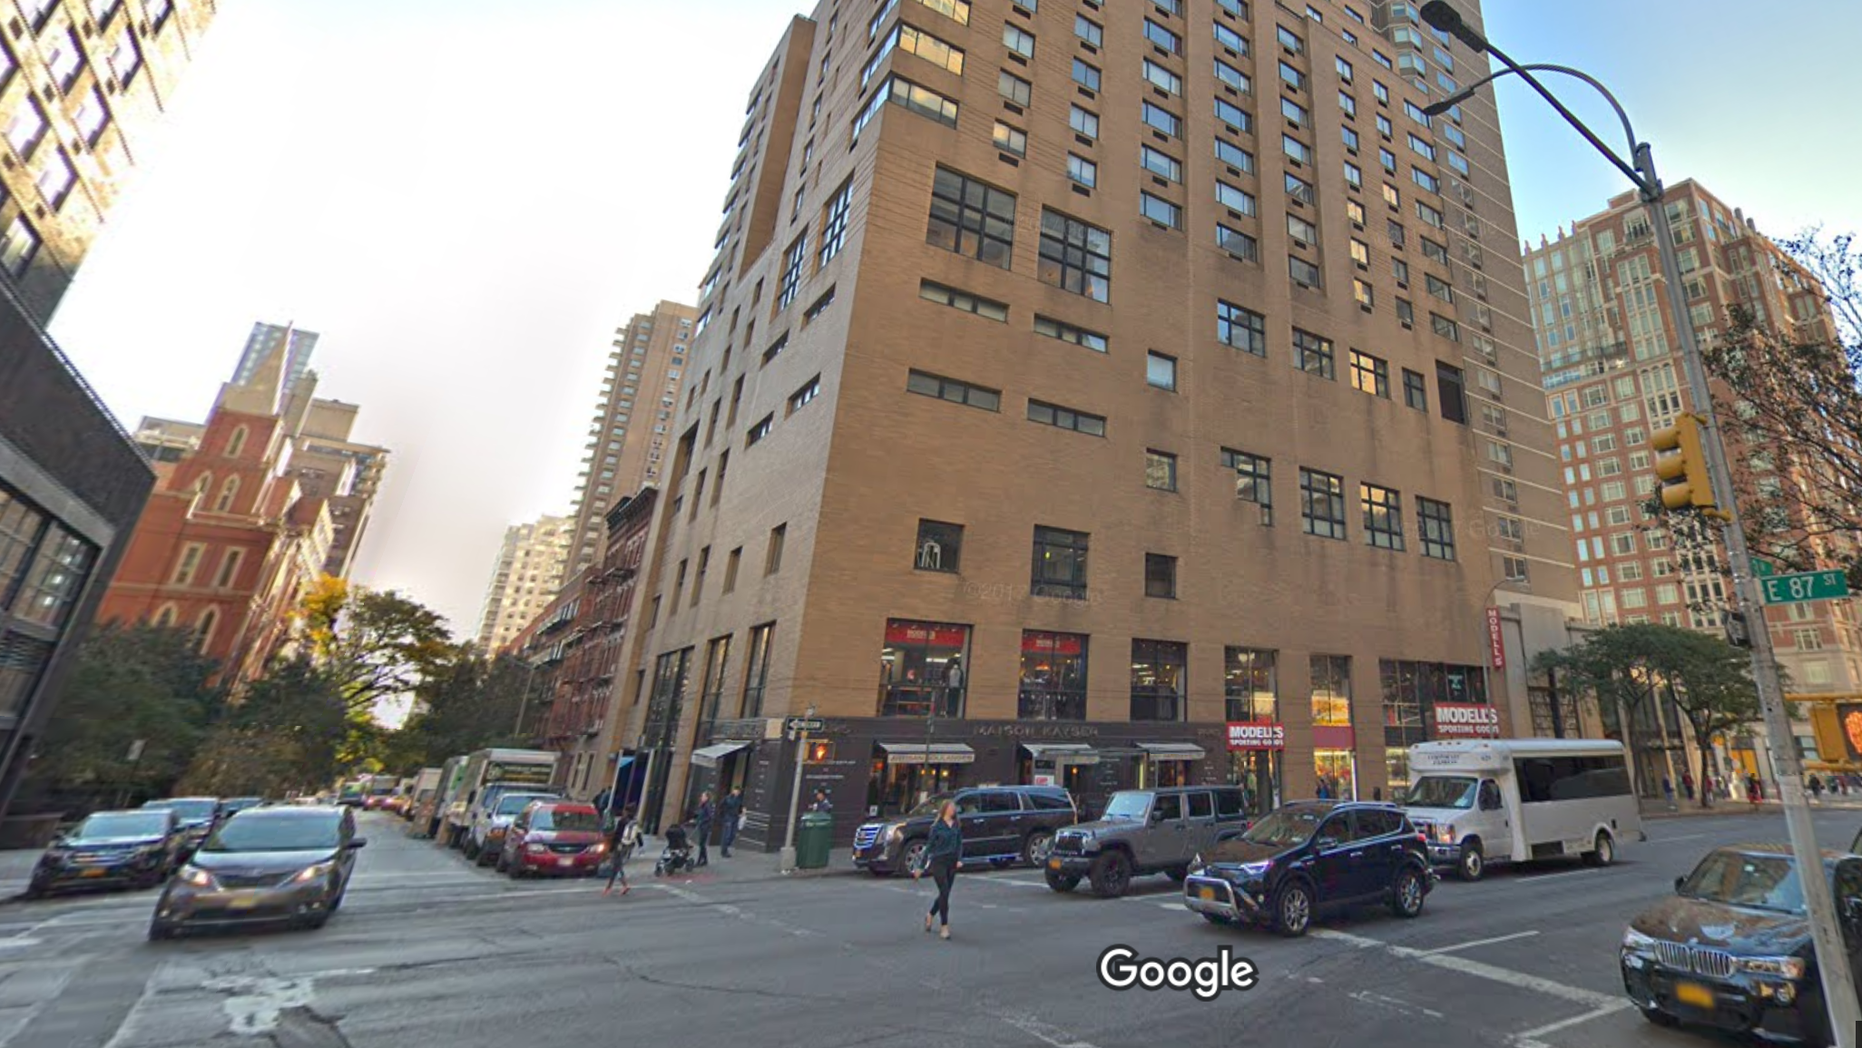 The apartment building from which the man fell.Michael Courtian, 55, was working on a window in the living room of his apartment located on East 87th Street and 3rd Avenue when he lost his balance and fell.